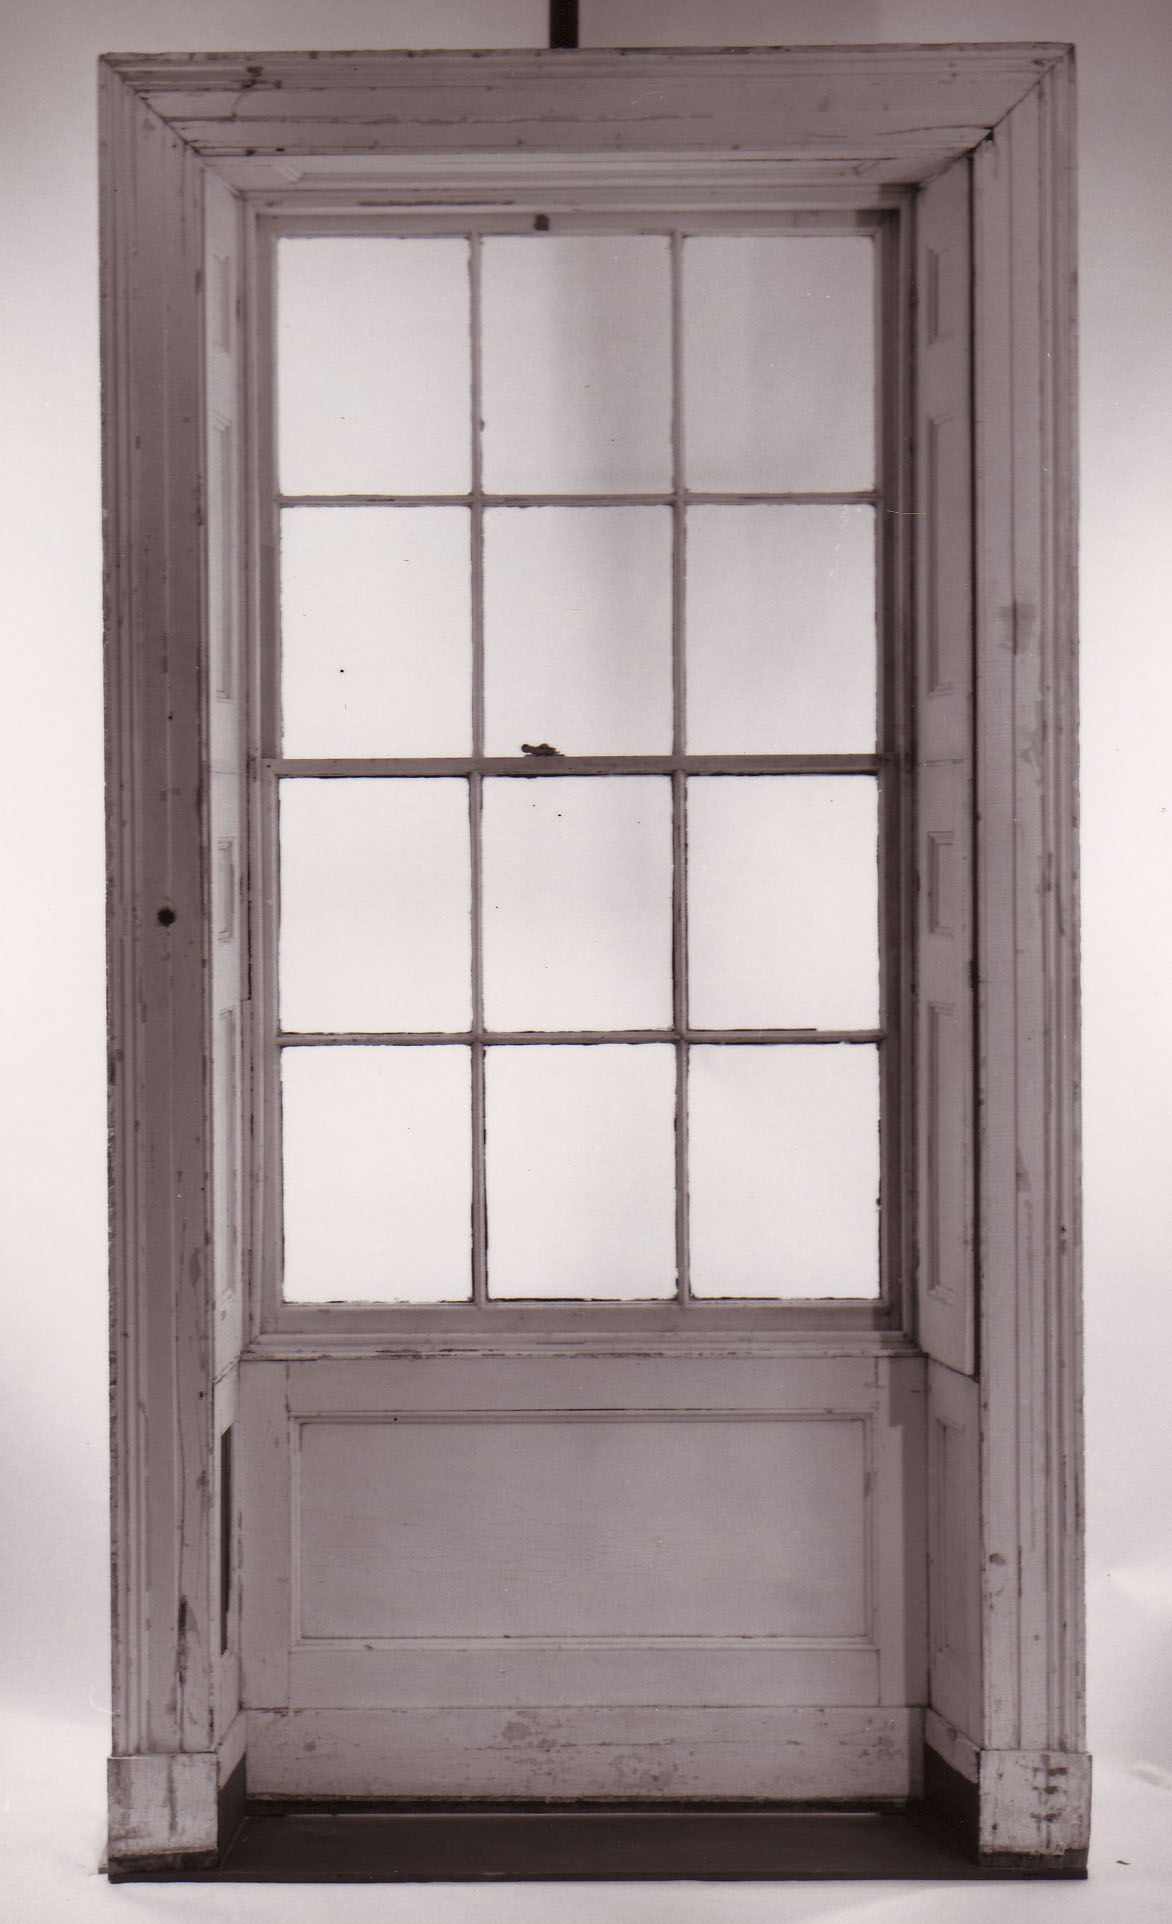 Interior window frames - 1820s Concealed Interior Window Shutter